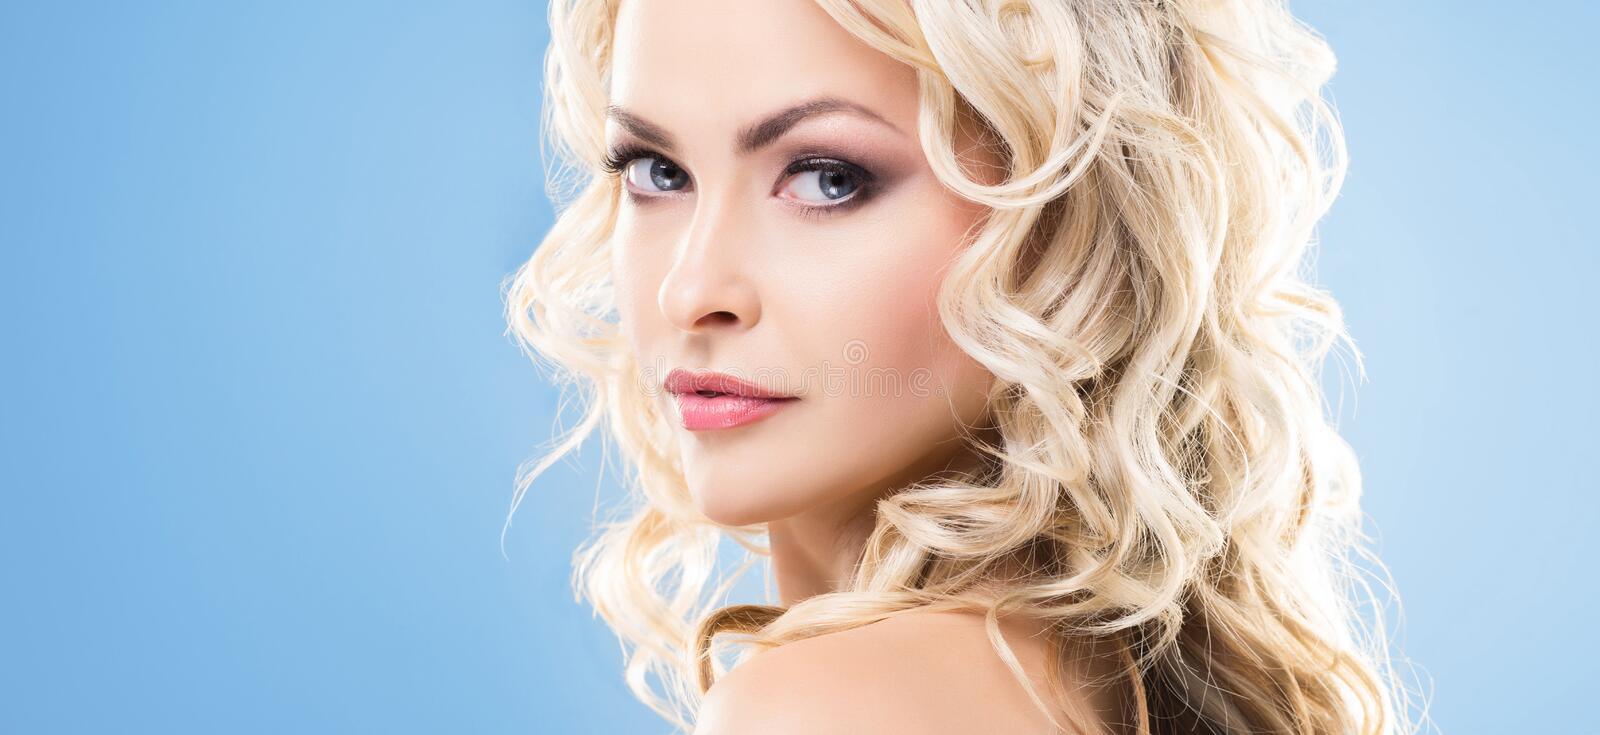 Beauty portrait of attractive blond woman with curly hair and a beautiful hairstyle. Makeup and cosmetics, face lifting royalty free stock photo